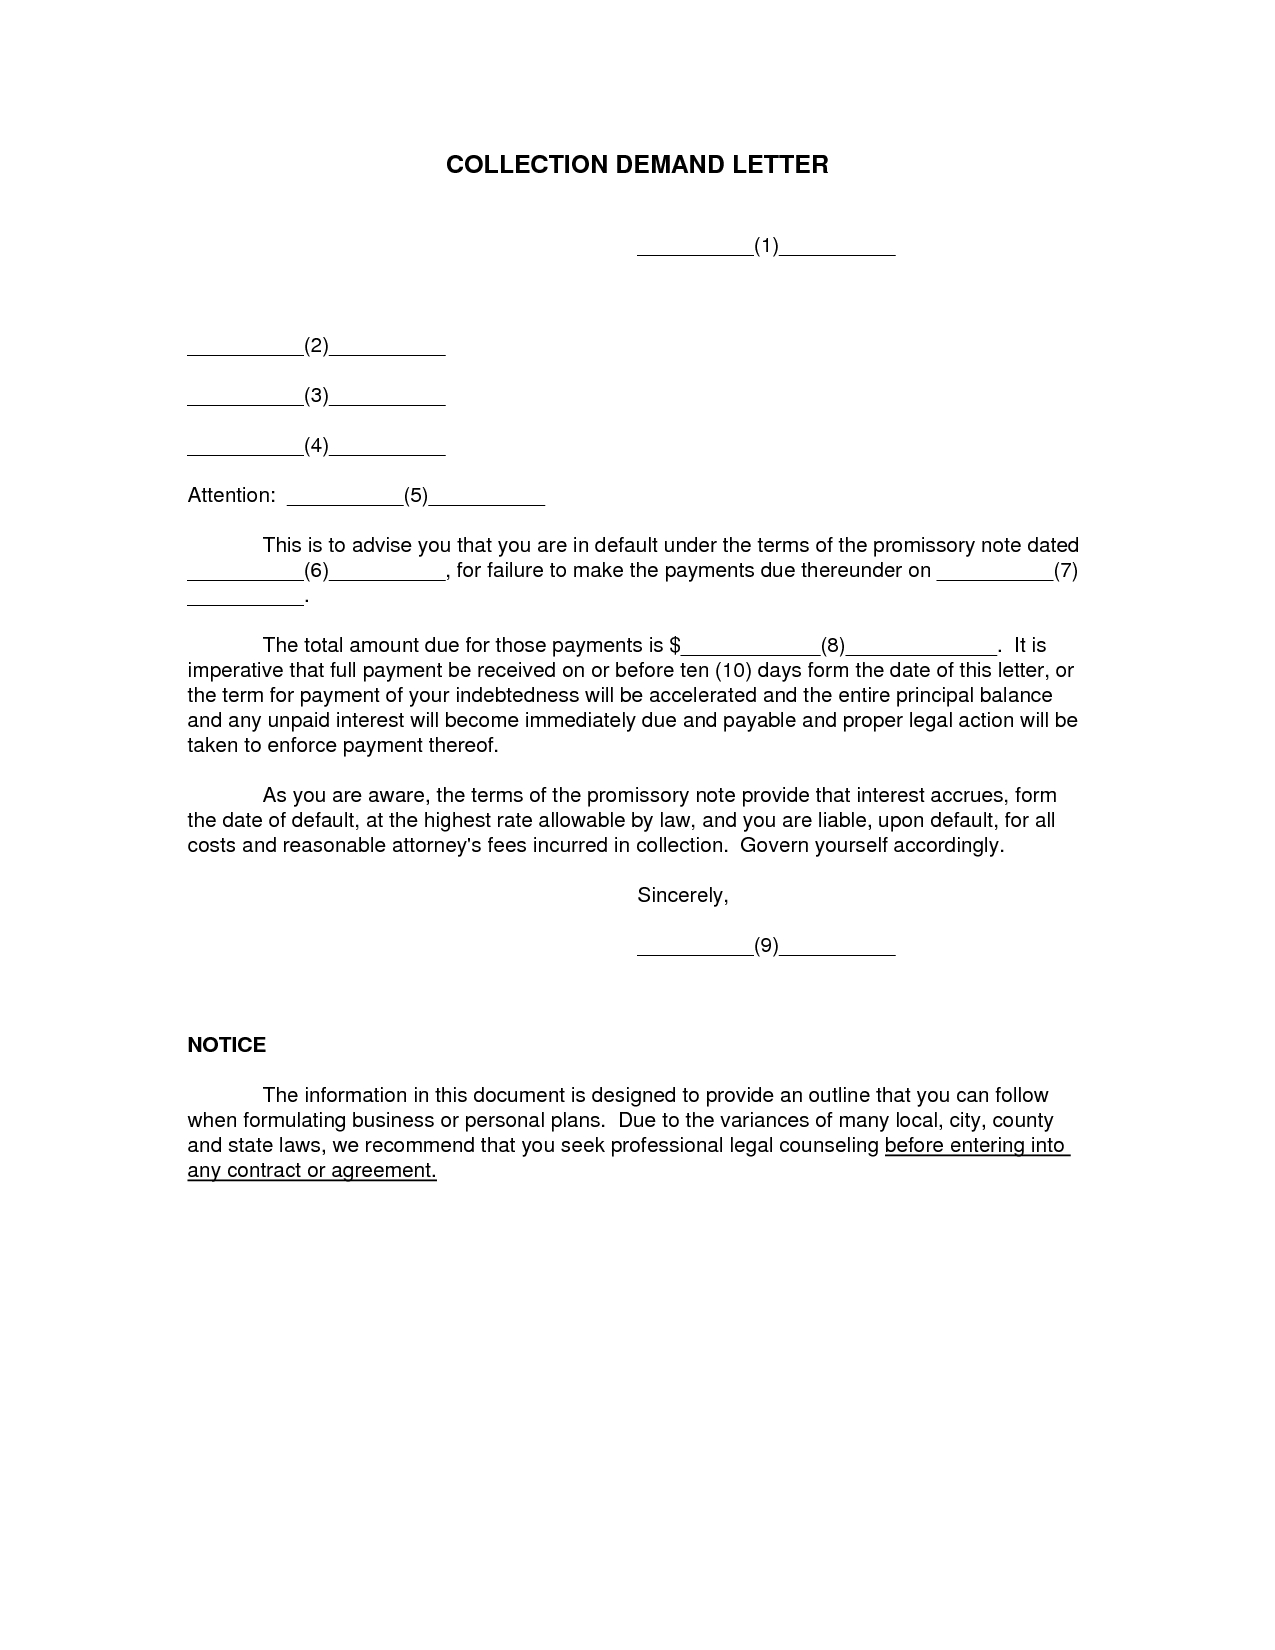 Demand Letter Template Texas - How to Write A Demand for Payment Letter Letter format